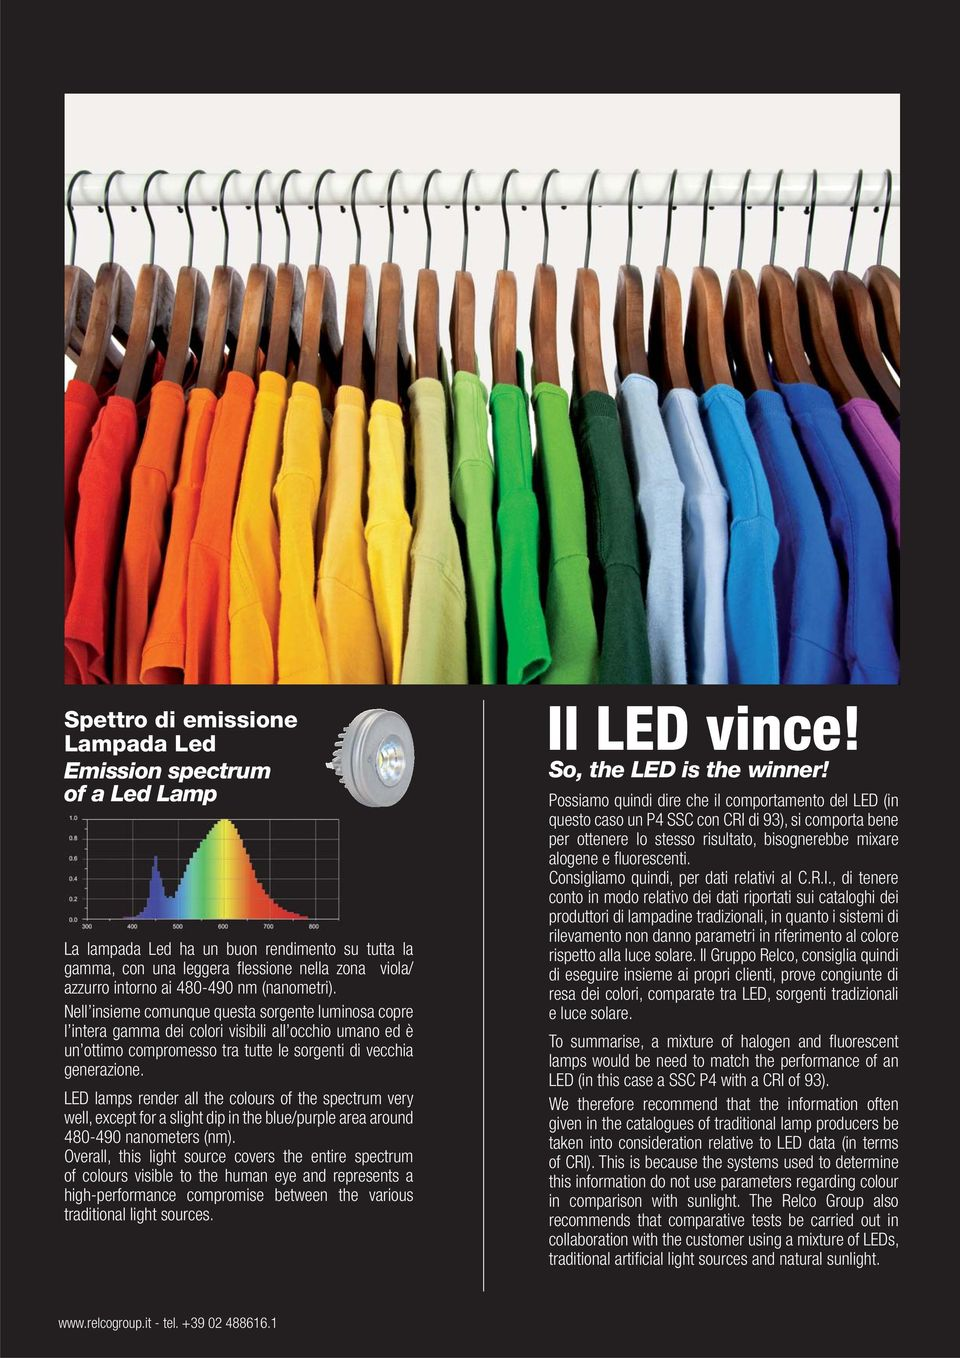 LED lamps render all the colours of the spectrum very well, except for a slight dip in the blue/purple area around 480-490 nanometers (nm).